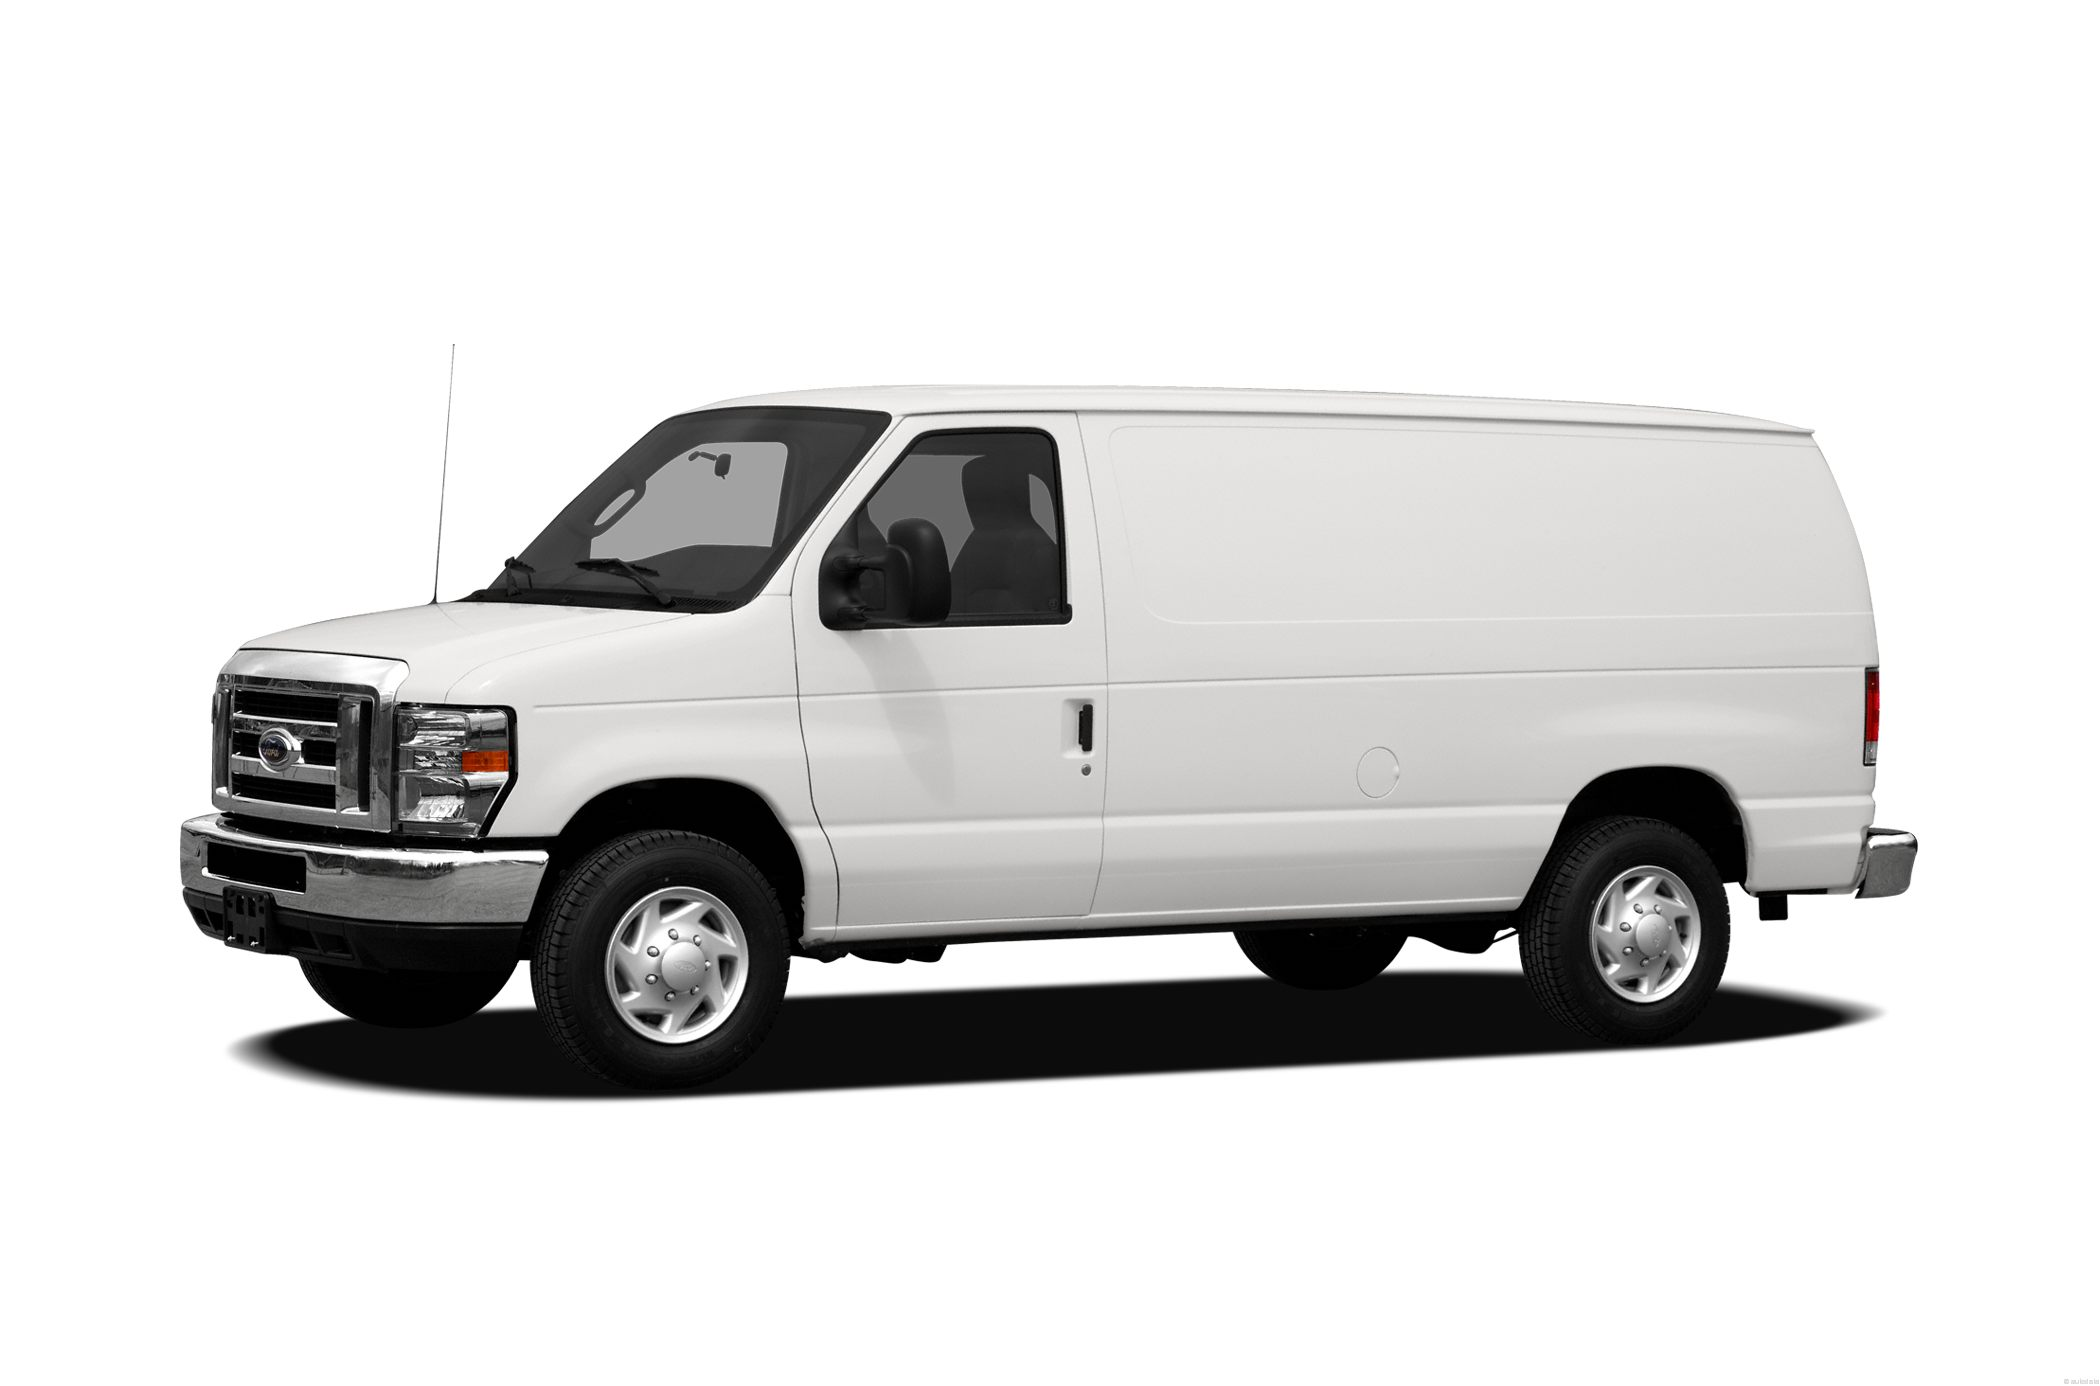 2012 Ford E-series Van #3